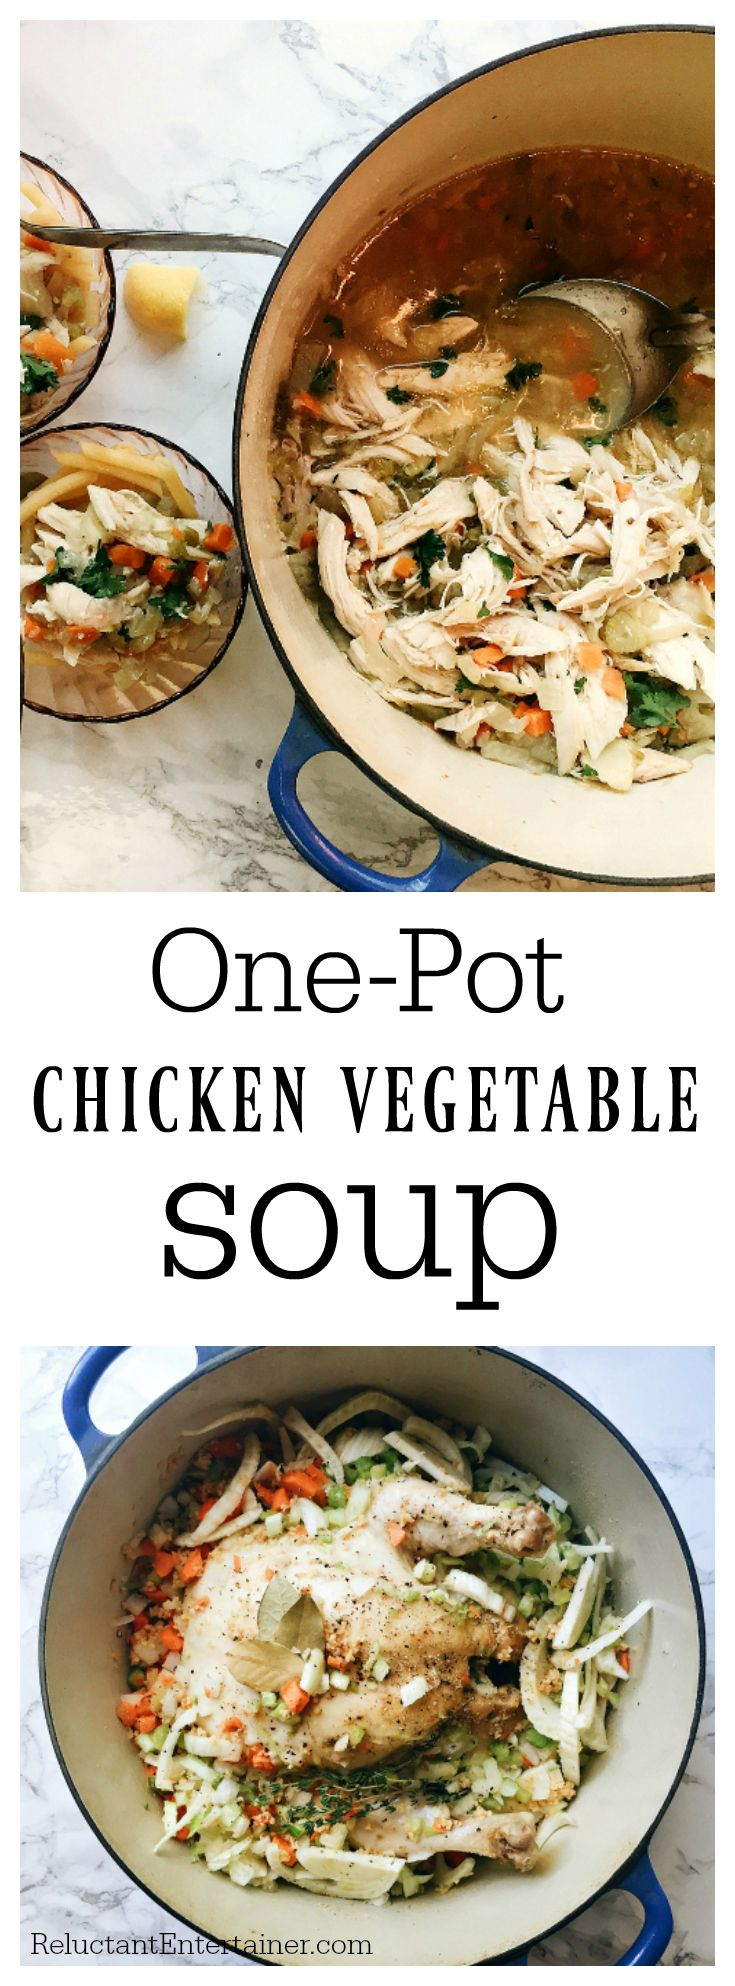 One-Pot Chicken Vegetable Soup, served with noodles and fresh lemon